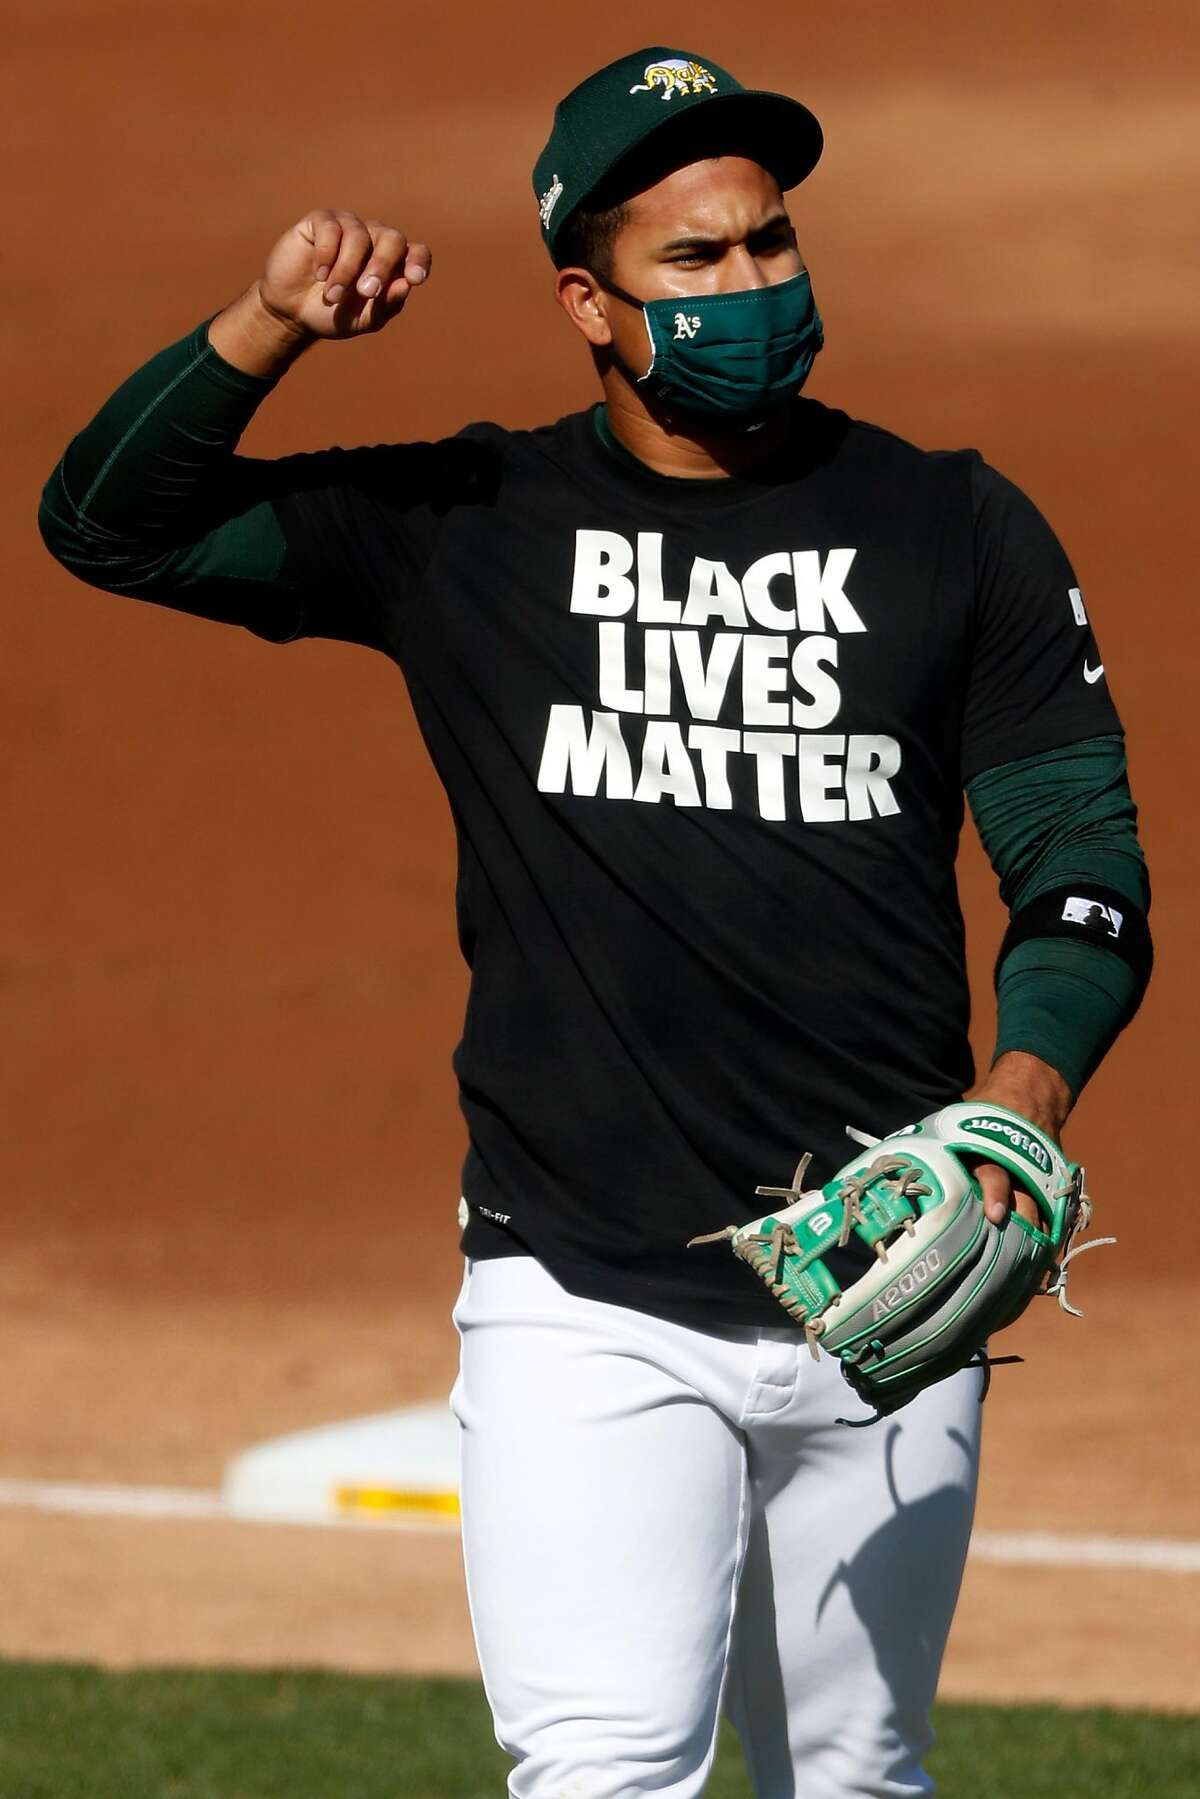 Oakland Athletics' Franklin Barreto wears a Black Lives Matter t-shirt before playing Los Angeles Angels in season opener at Oakland Coliseum in Oakland, Calif., on Friday, July 24, 2020.